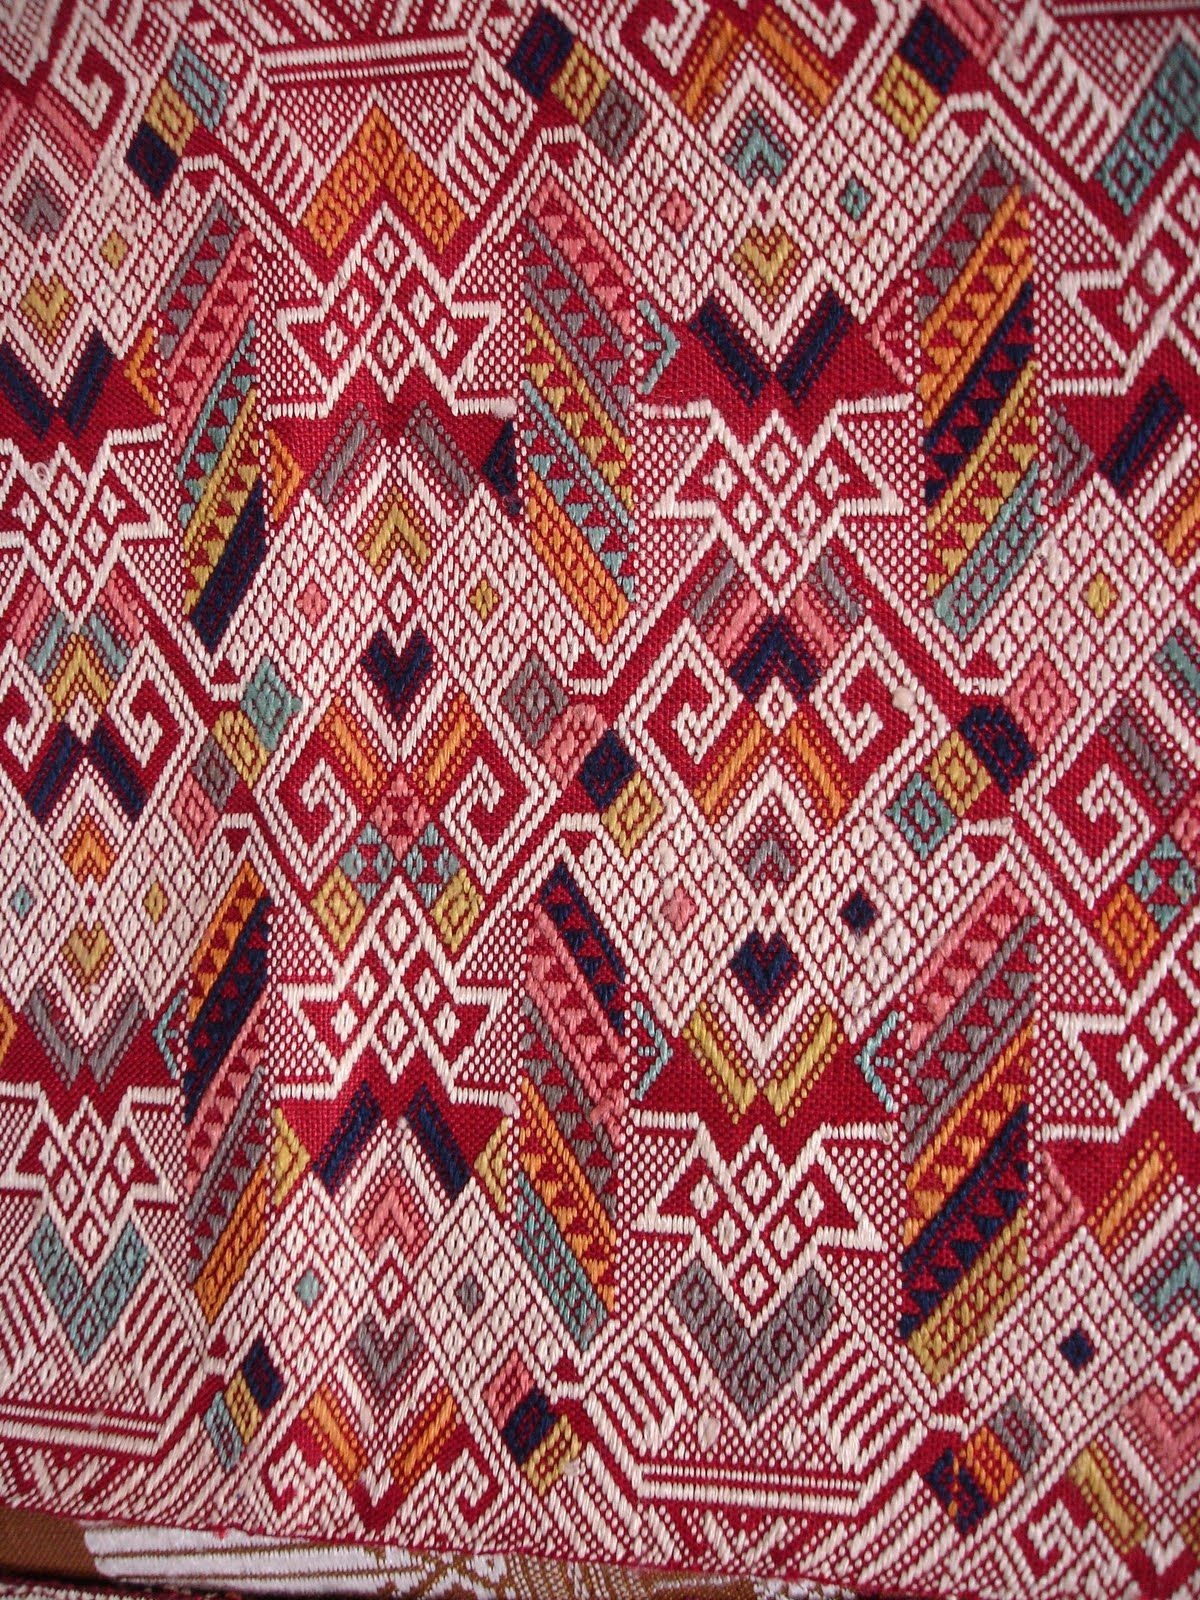 Pepo Passion Laotian Weaving Workshop Patterns